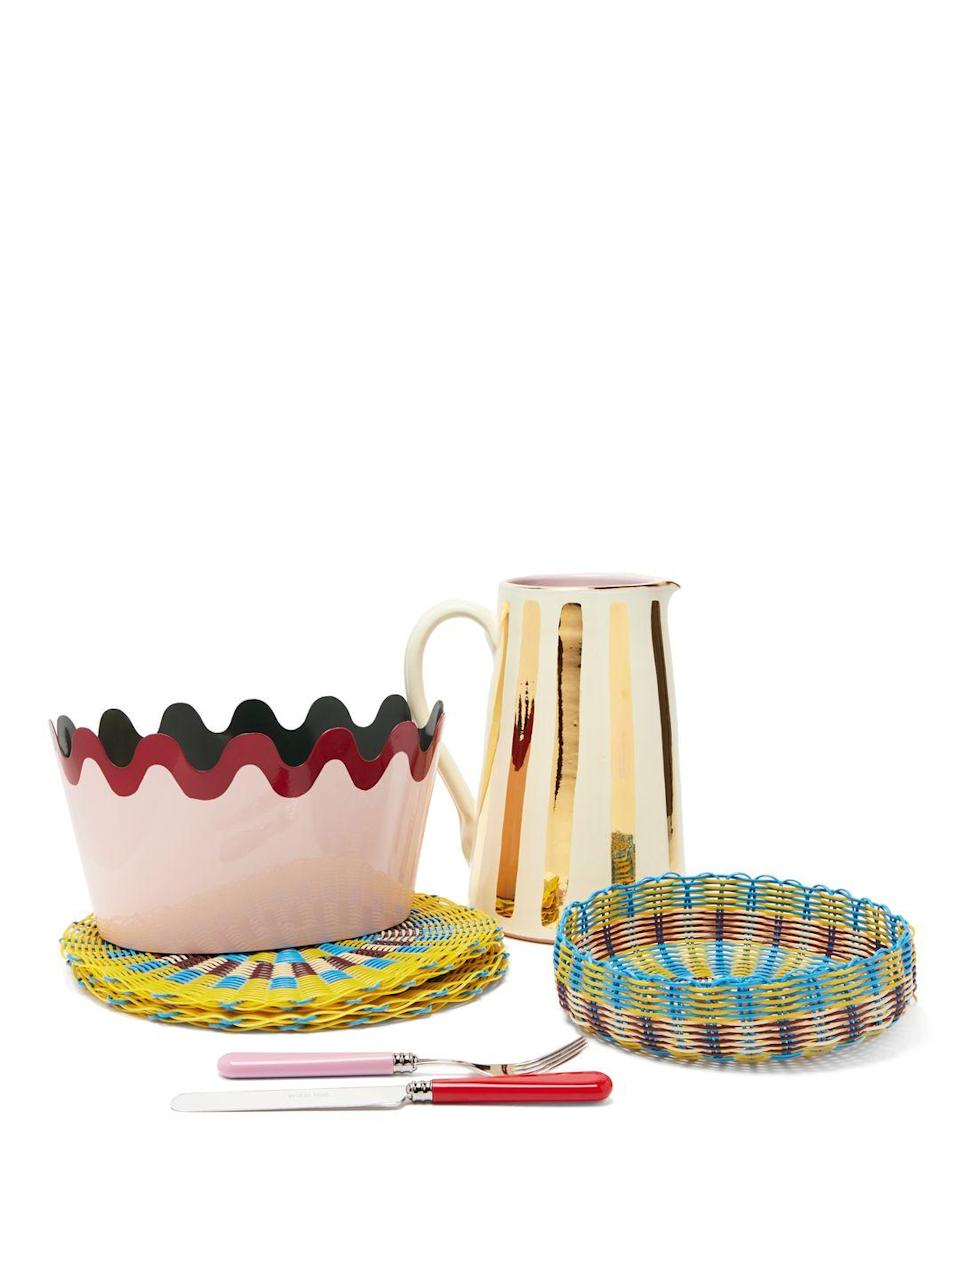 """<p>Create the perfect ambience for a stylish lunch in the sun with Matilda Goad's vibrant homeware. Featuring her signature scallop-edging and whimsical colour combinations, woven placemats and a matching basket, candy-hued cutlery and chic gilded water jugs, they are a wonderful accompaniment to a sunny day. Brooke Theis</p><p>From £8 at <a href=""""https://matildagoad.com/collections/tabletop"""" rel=""""nofollow noopener"""" target=""""_blank"""" data-ylk=""""slk:Matilda Goad"""" class=""""link rapid-noclick-resp"""">Matilda Goad</a>.</p>"""